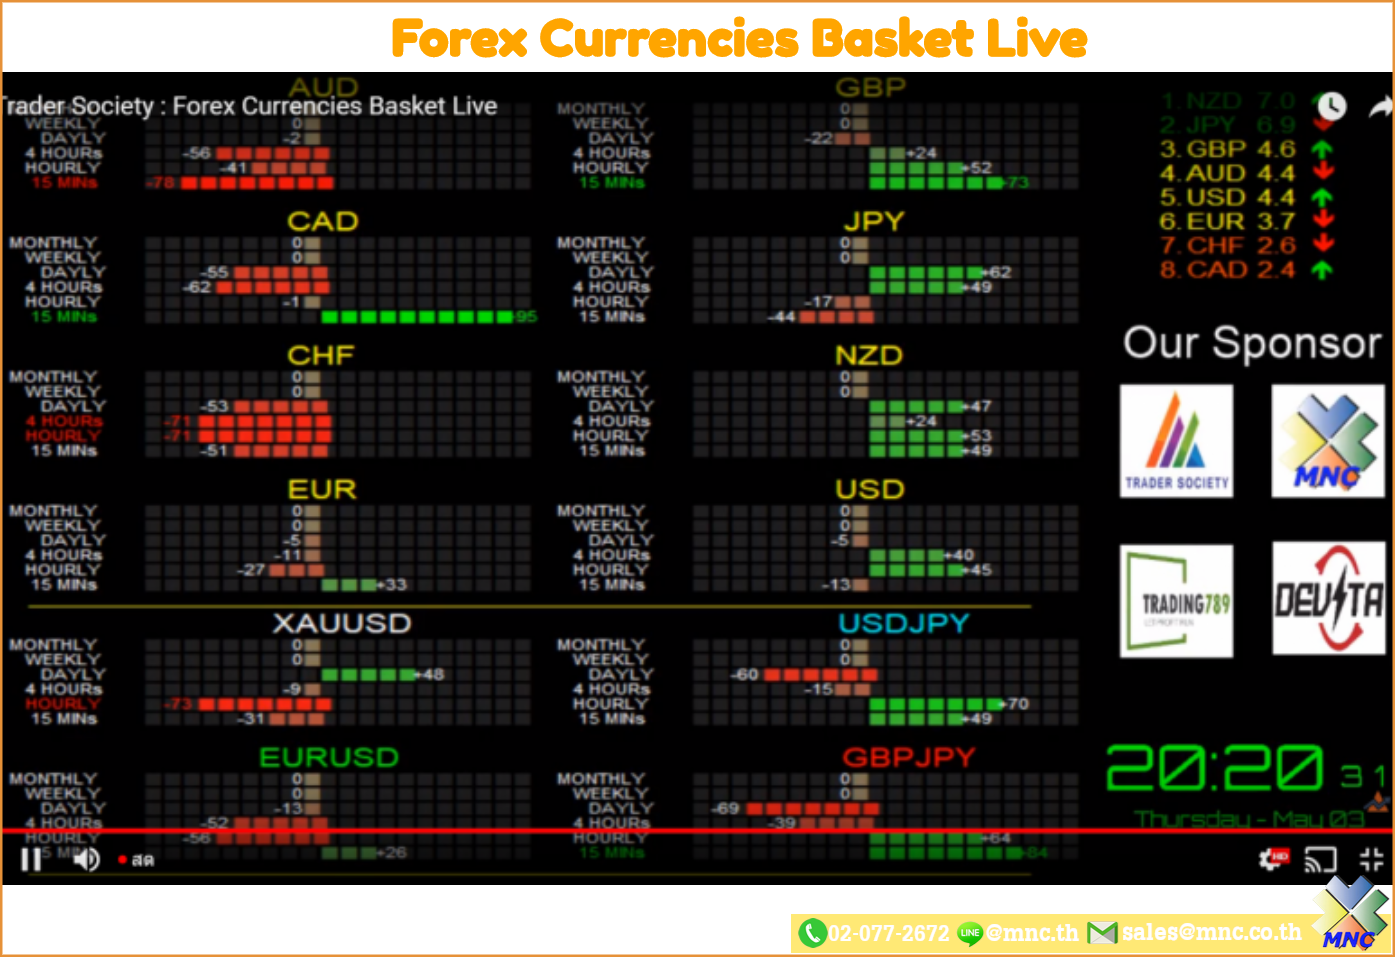 MNC Forex Currencies Basket Live